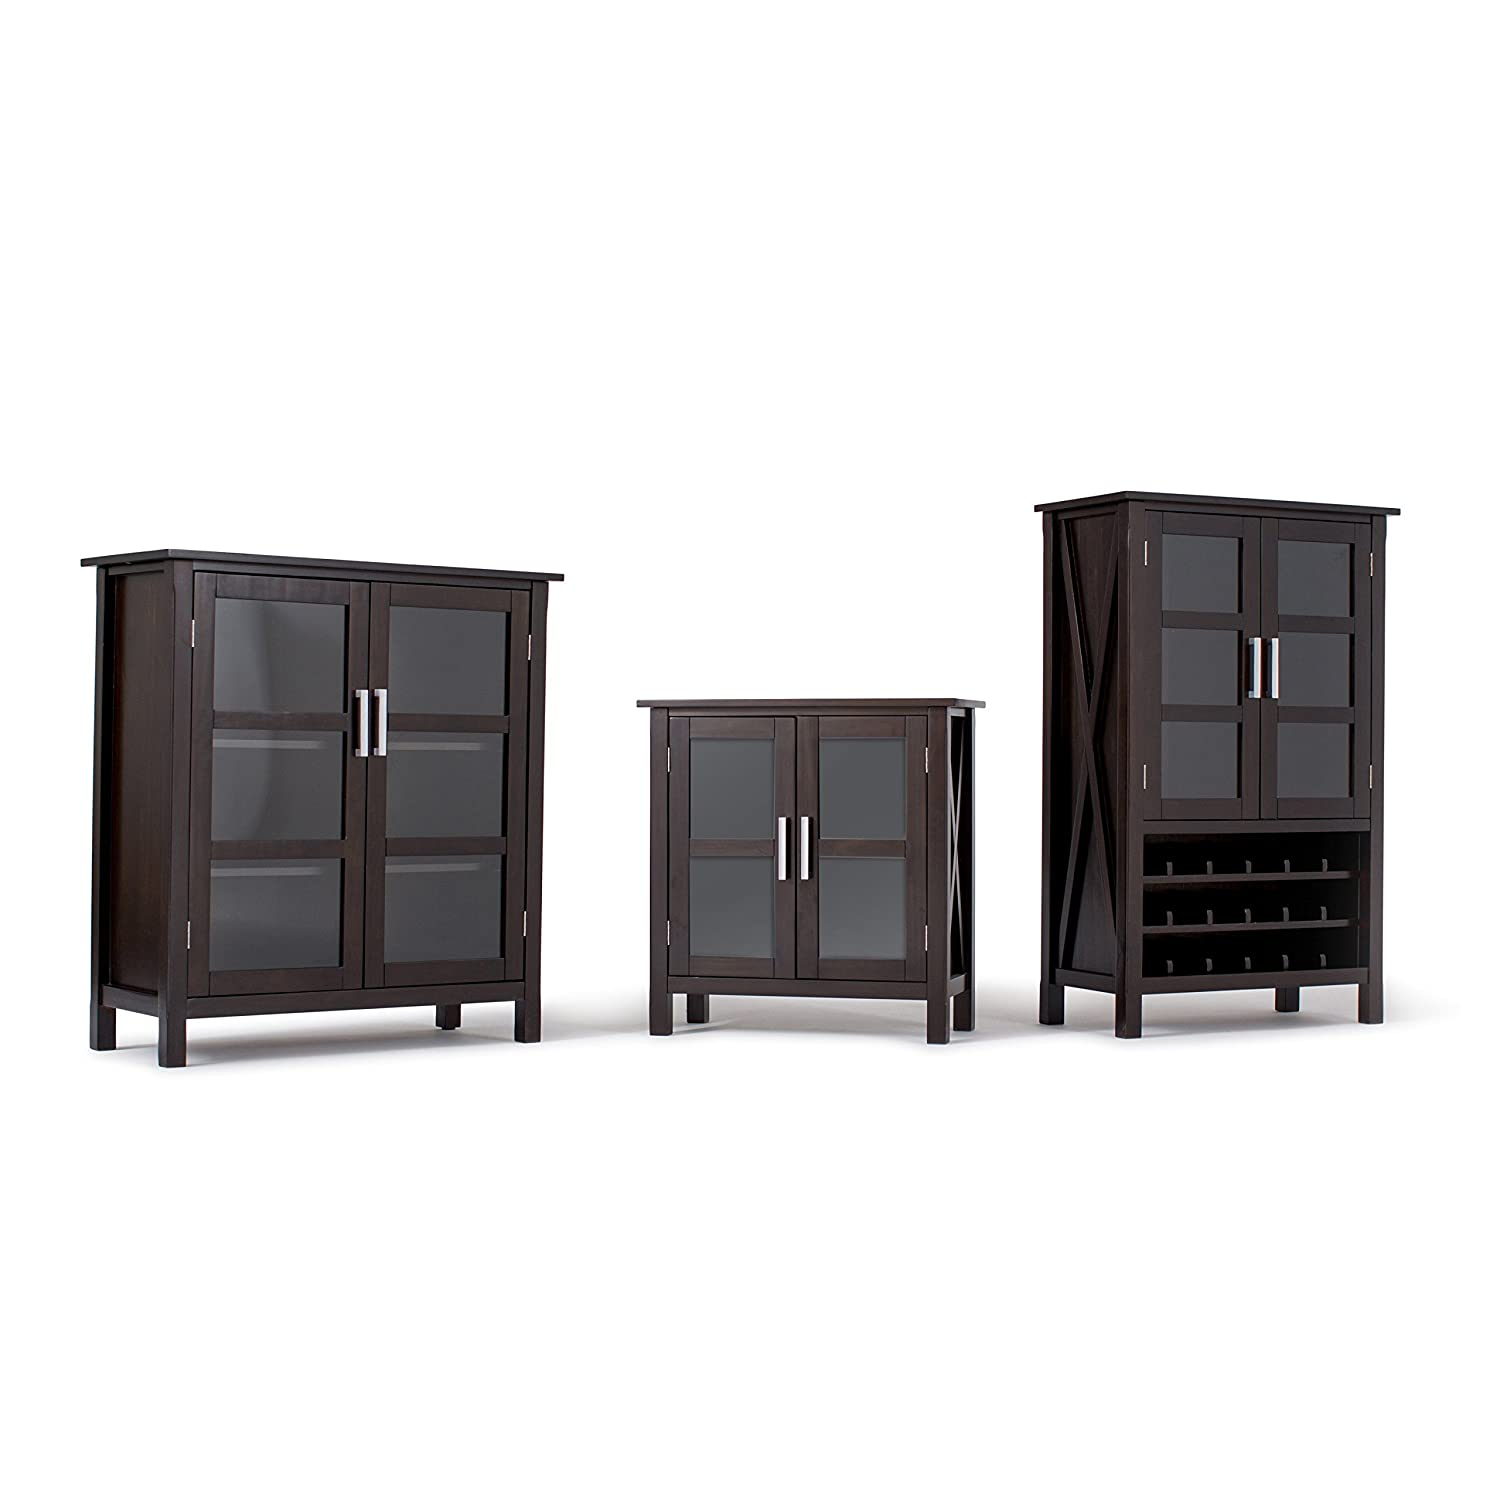 Furniture Warehouse Kitchener Amazoncom Simpli Home Kitchener Storage Cabinet Medium Walnut